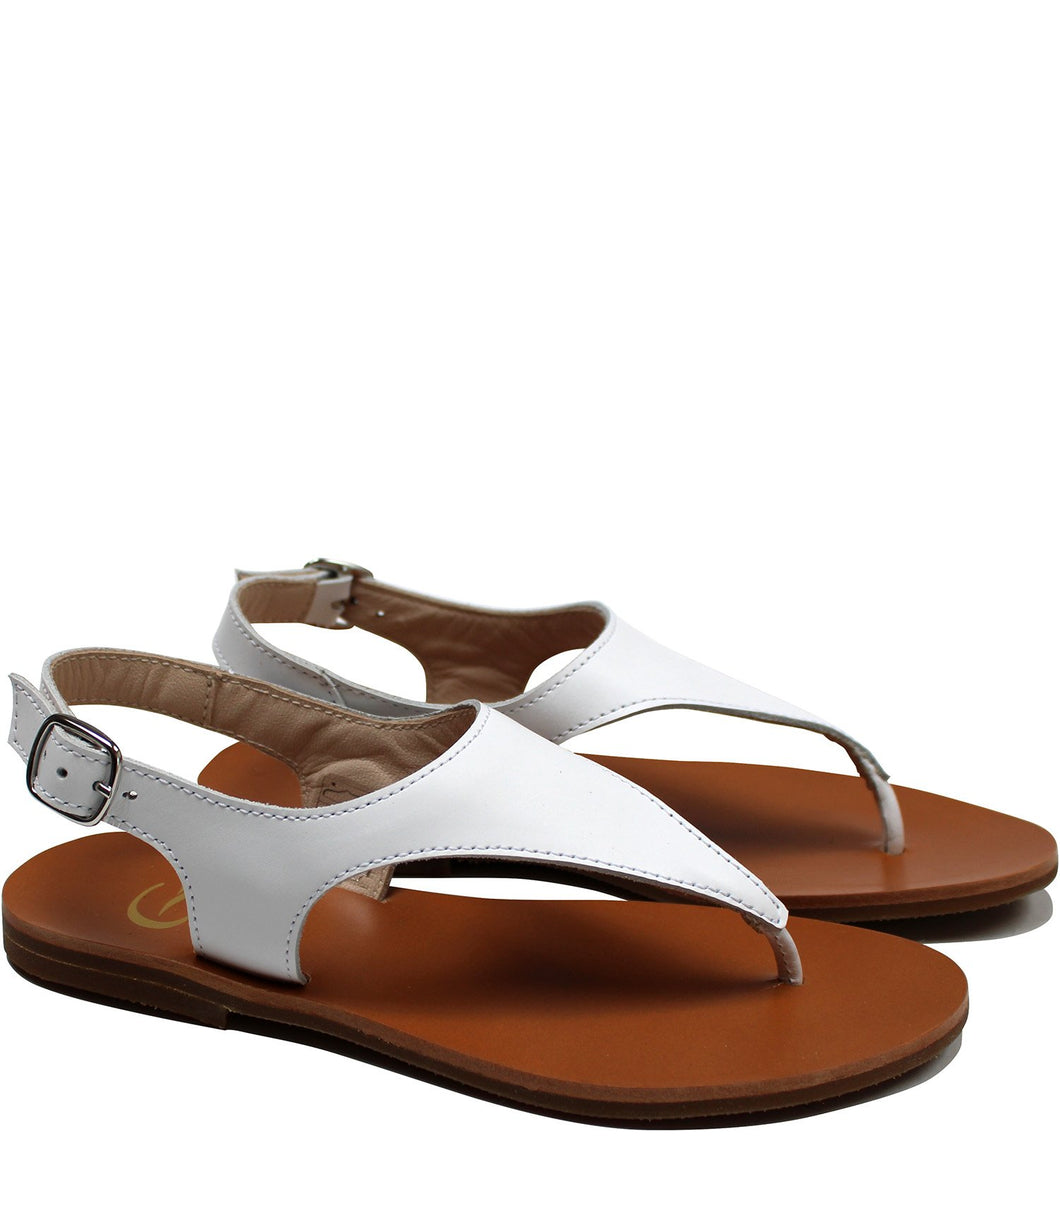 White leather sandals